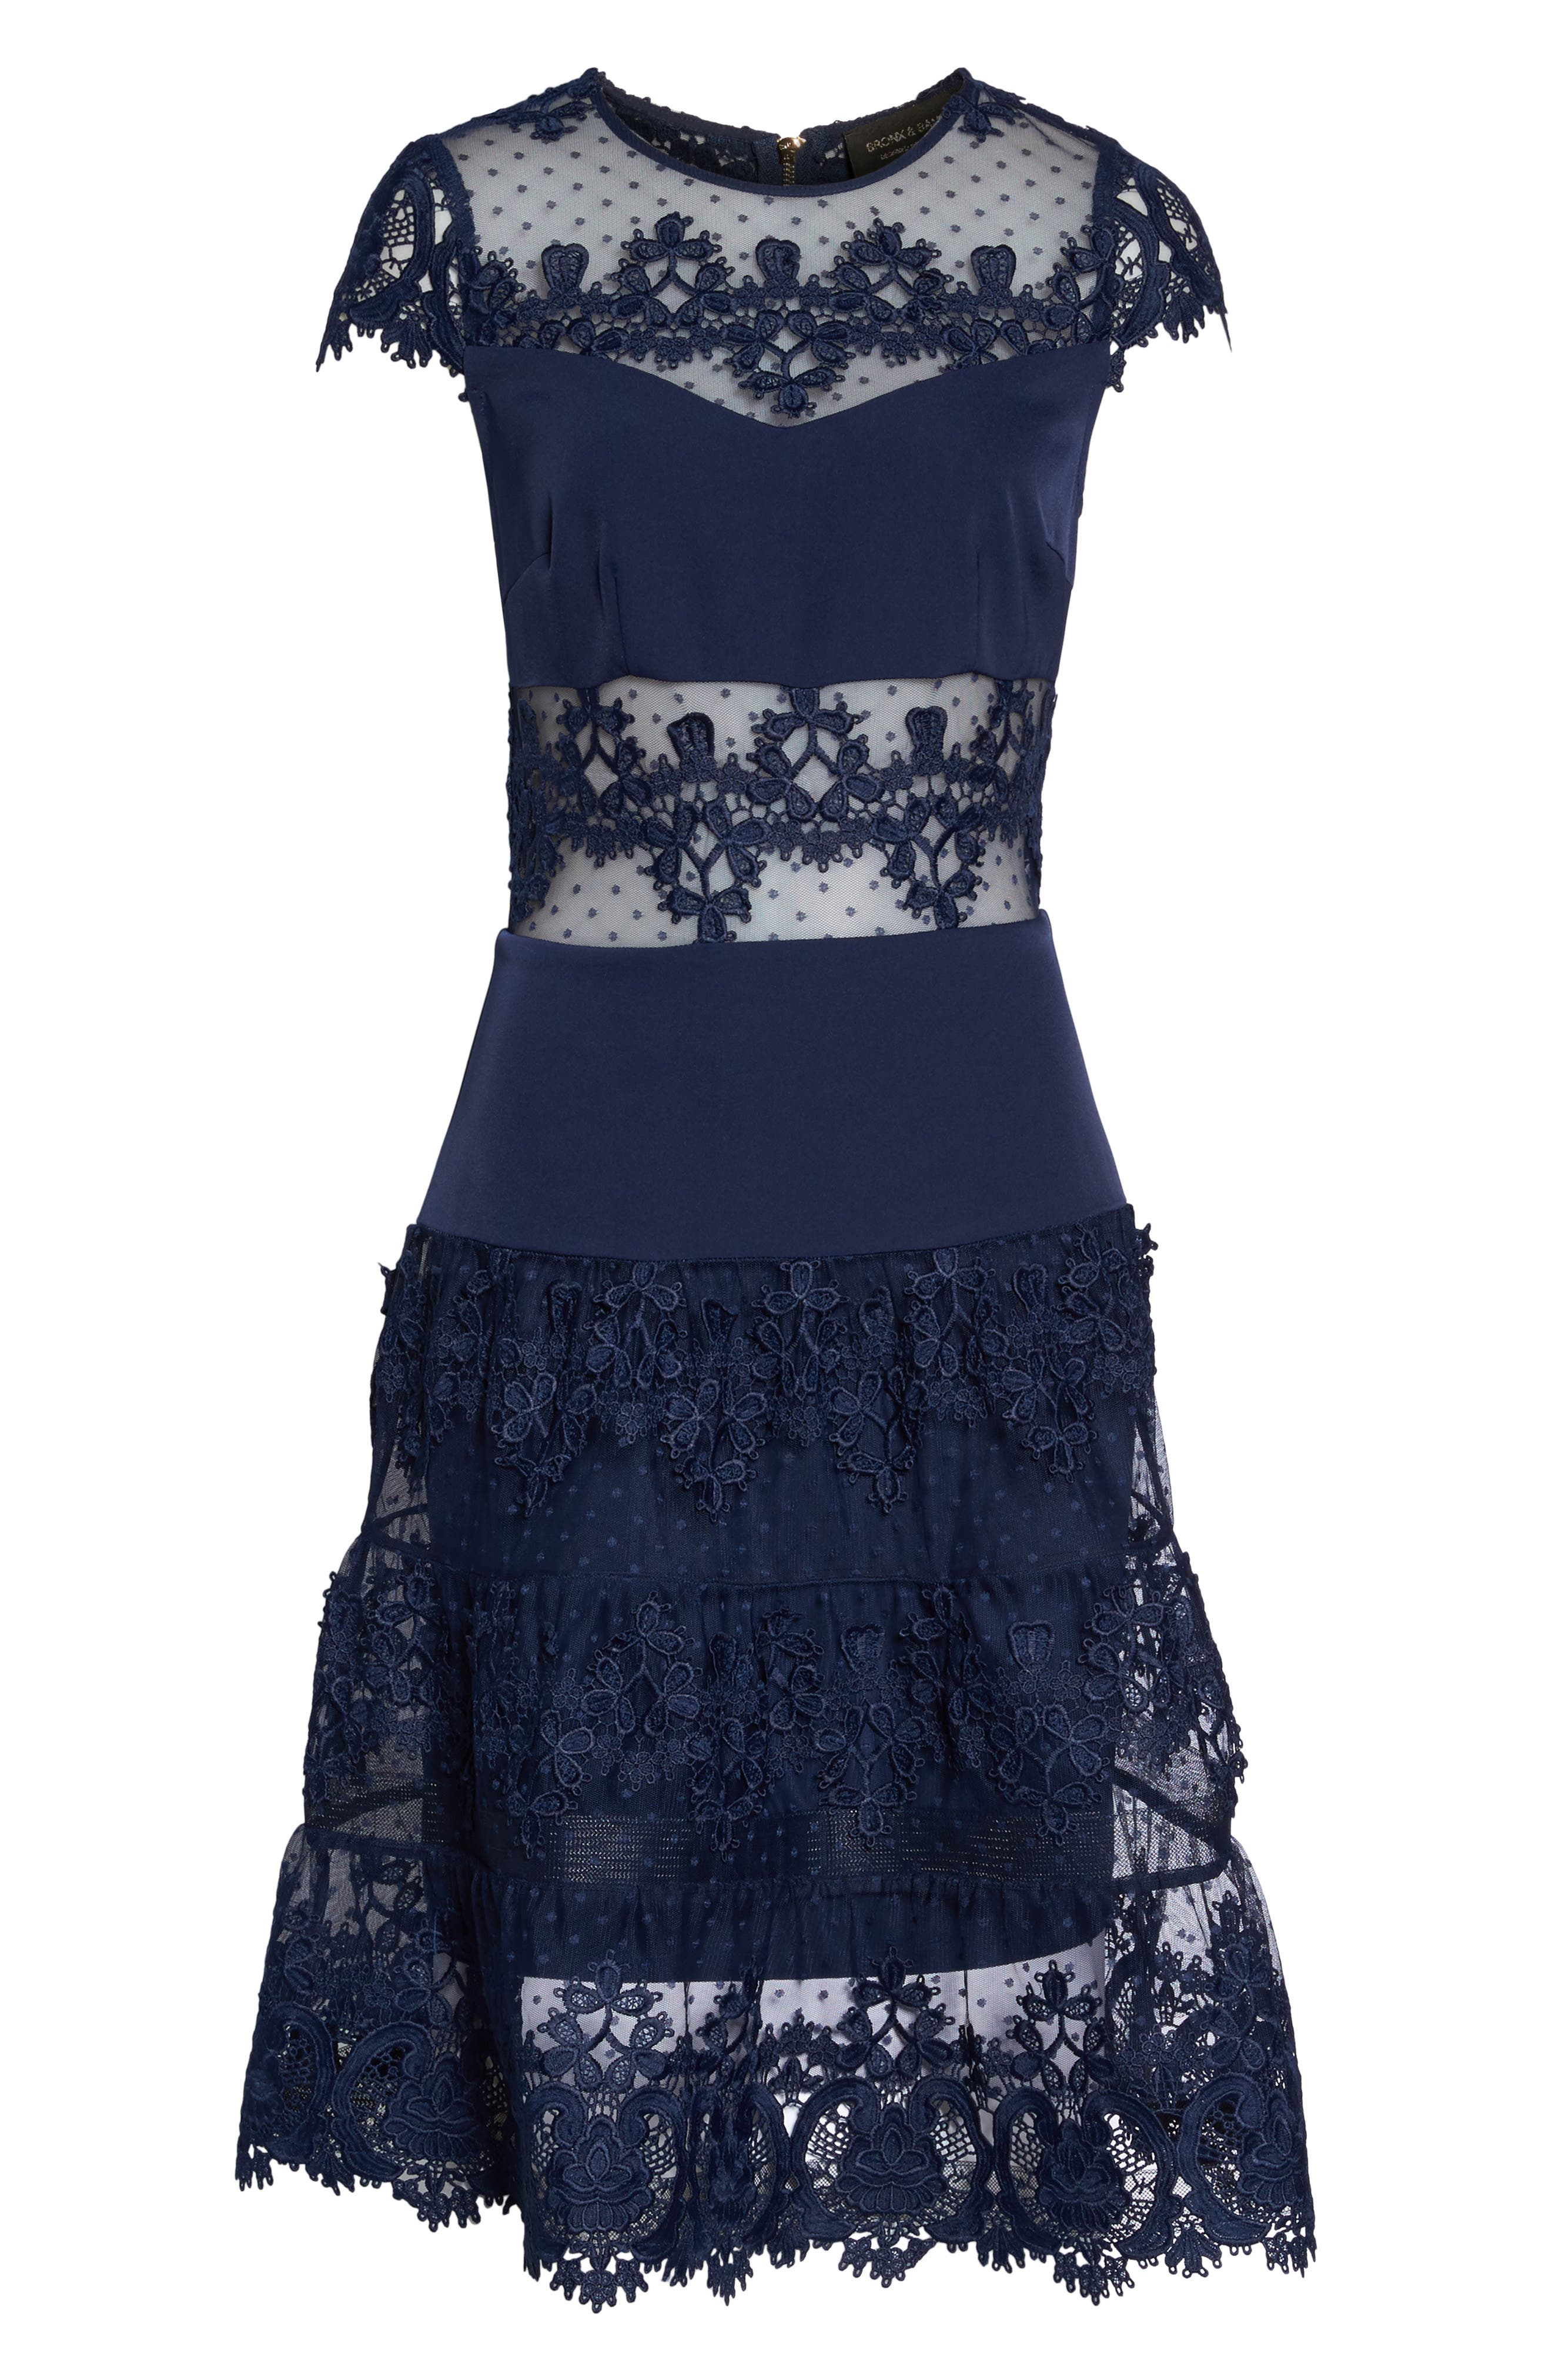 Flamenco Lace Inset Fit & Flare Dress,                             Alternate thumbnail 7, color,                             Navy